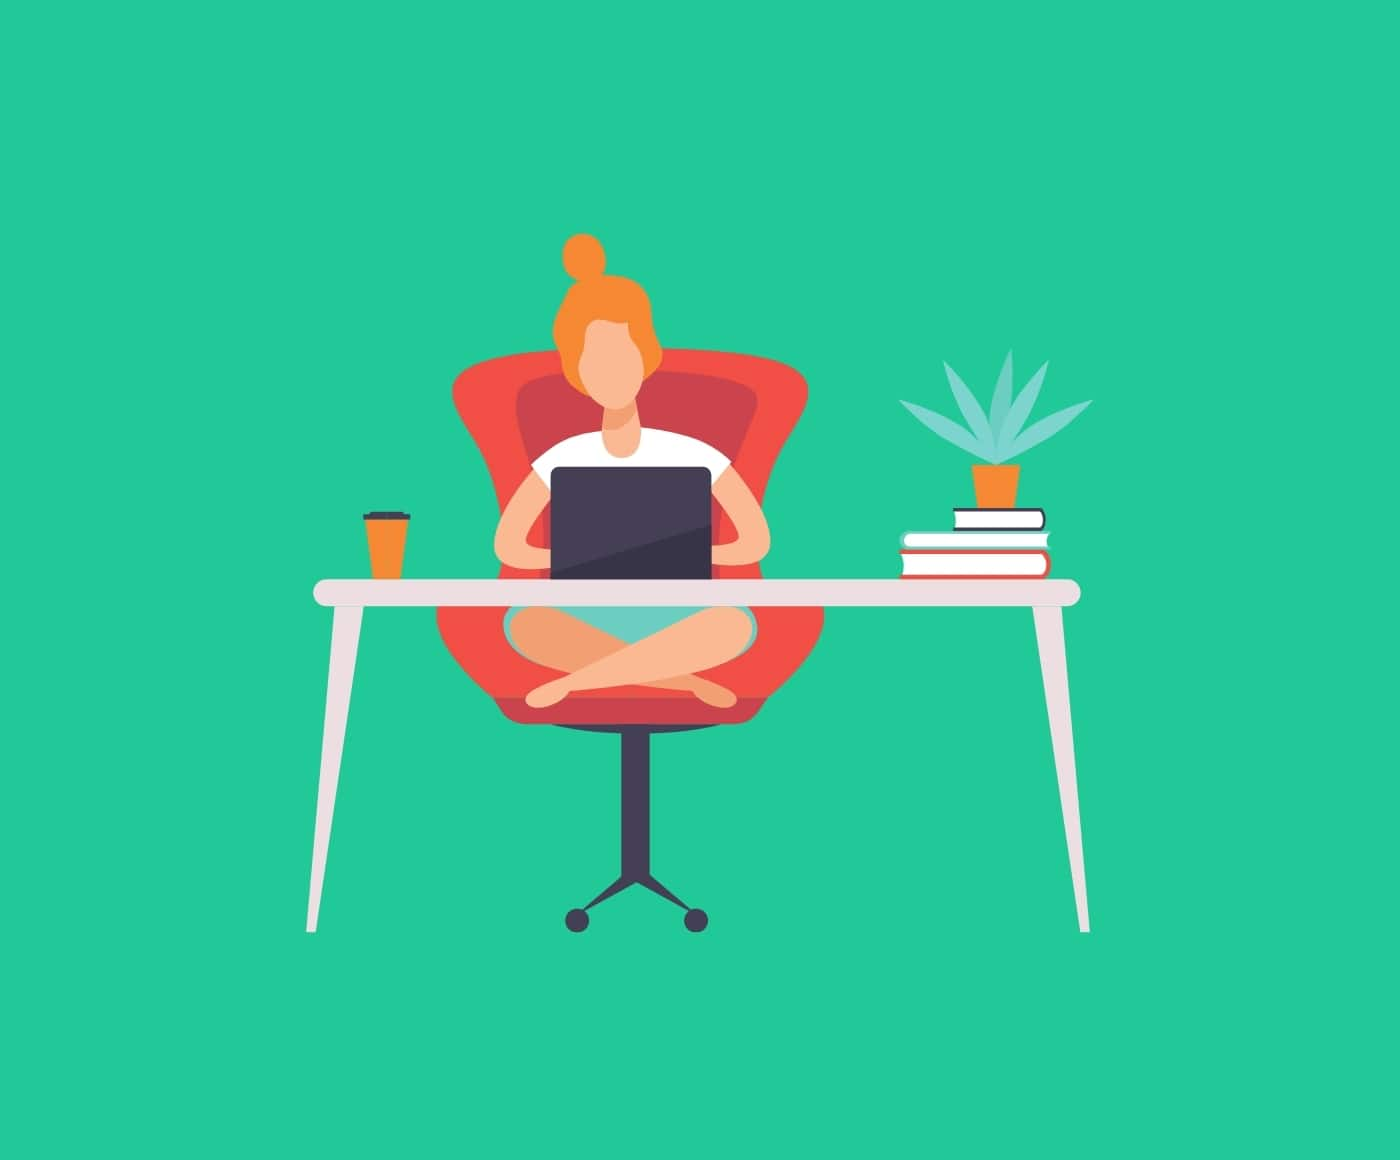 Tips on keeping remote employees engaged and running effective online check-ins